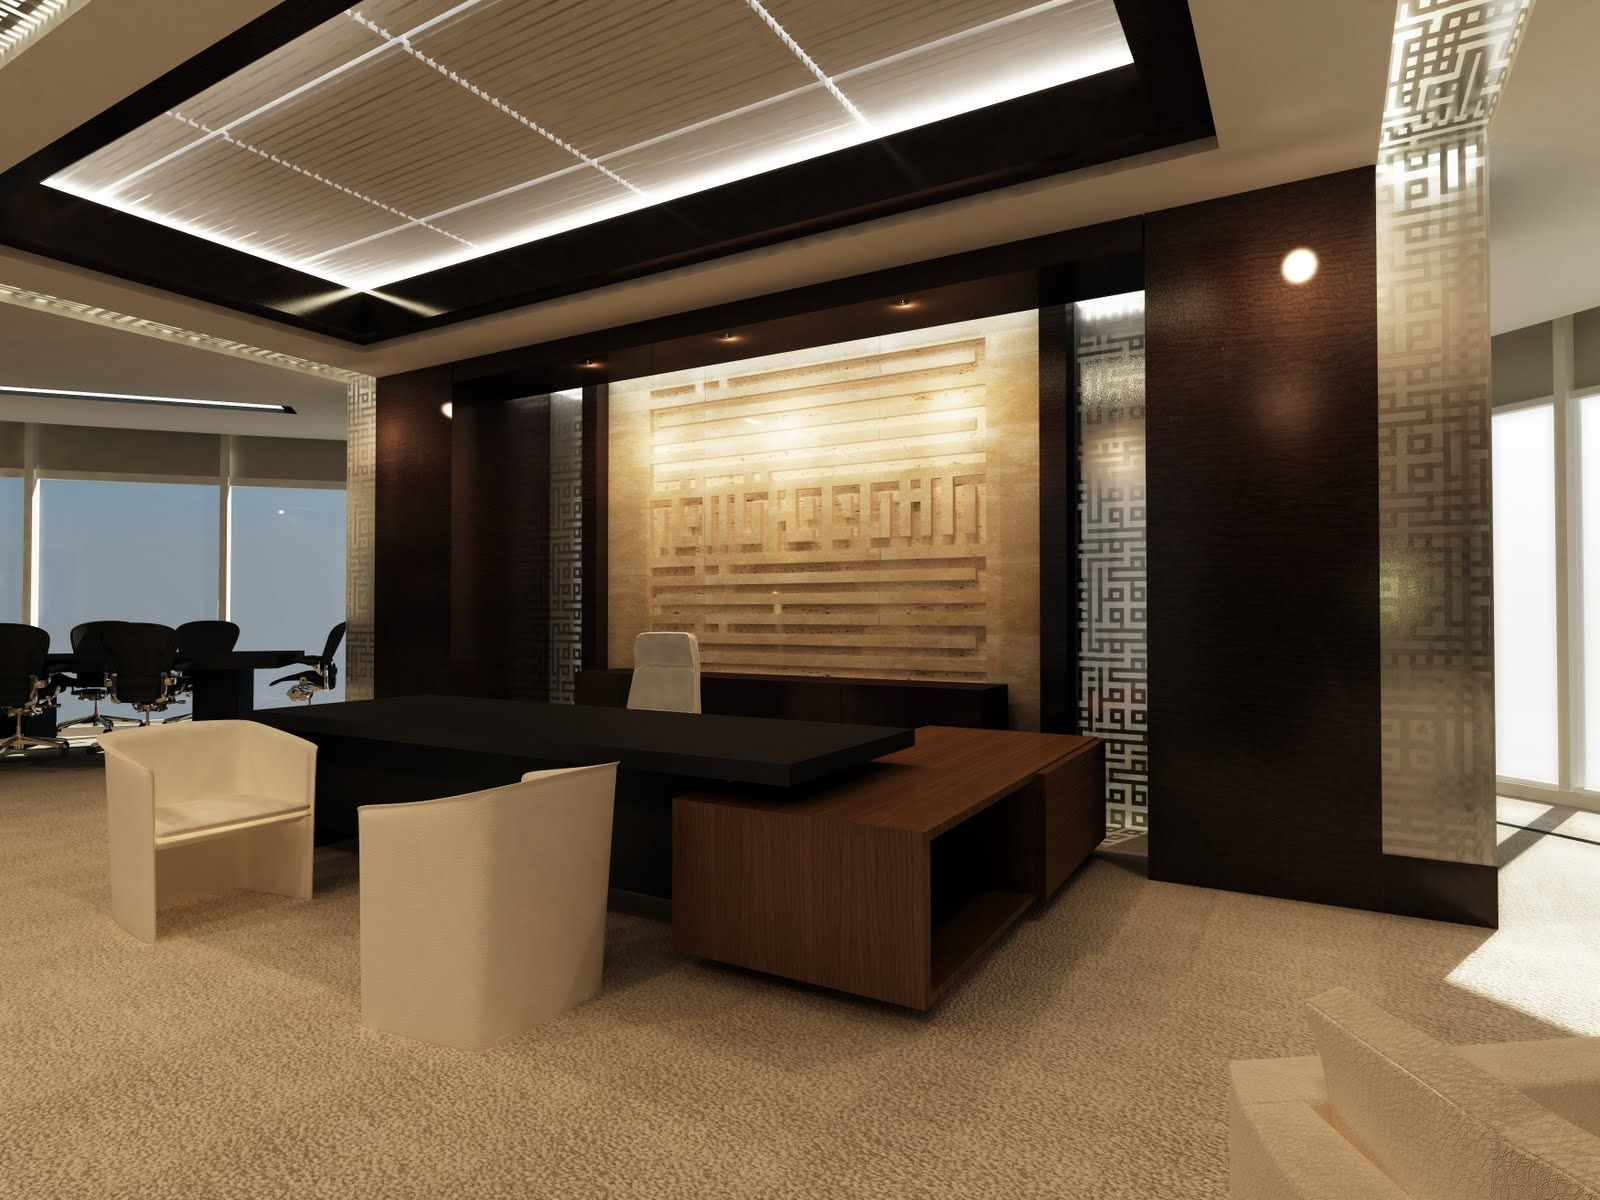 modern ceo office design modern design ceiling office ceo ideas modern ceo office design modern design ceiling office ceo ideas modern design ceiling office ceo ceo minimalist office interior image jpg 980 735